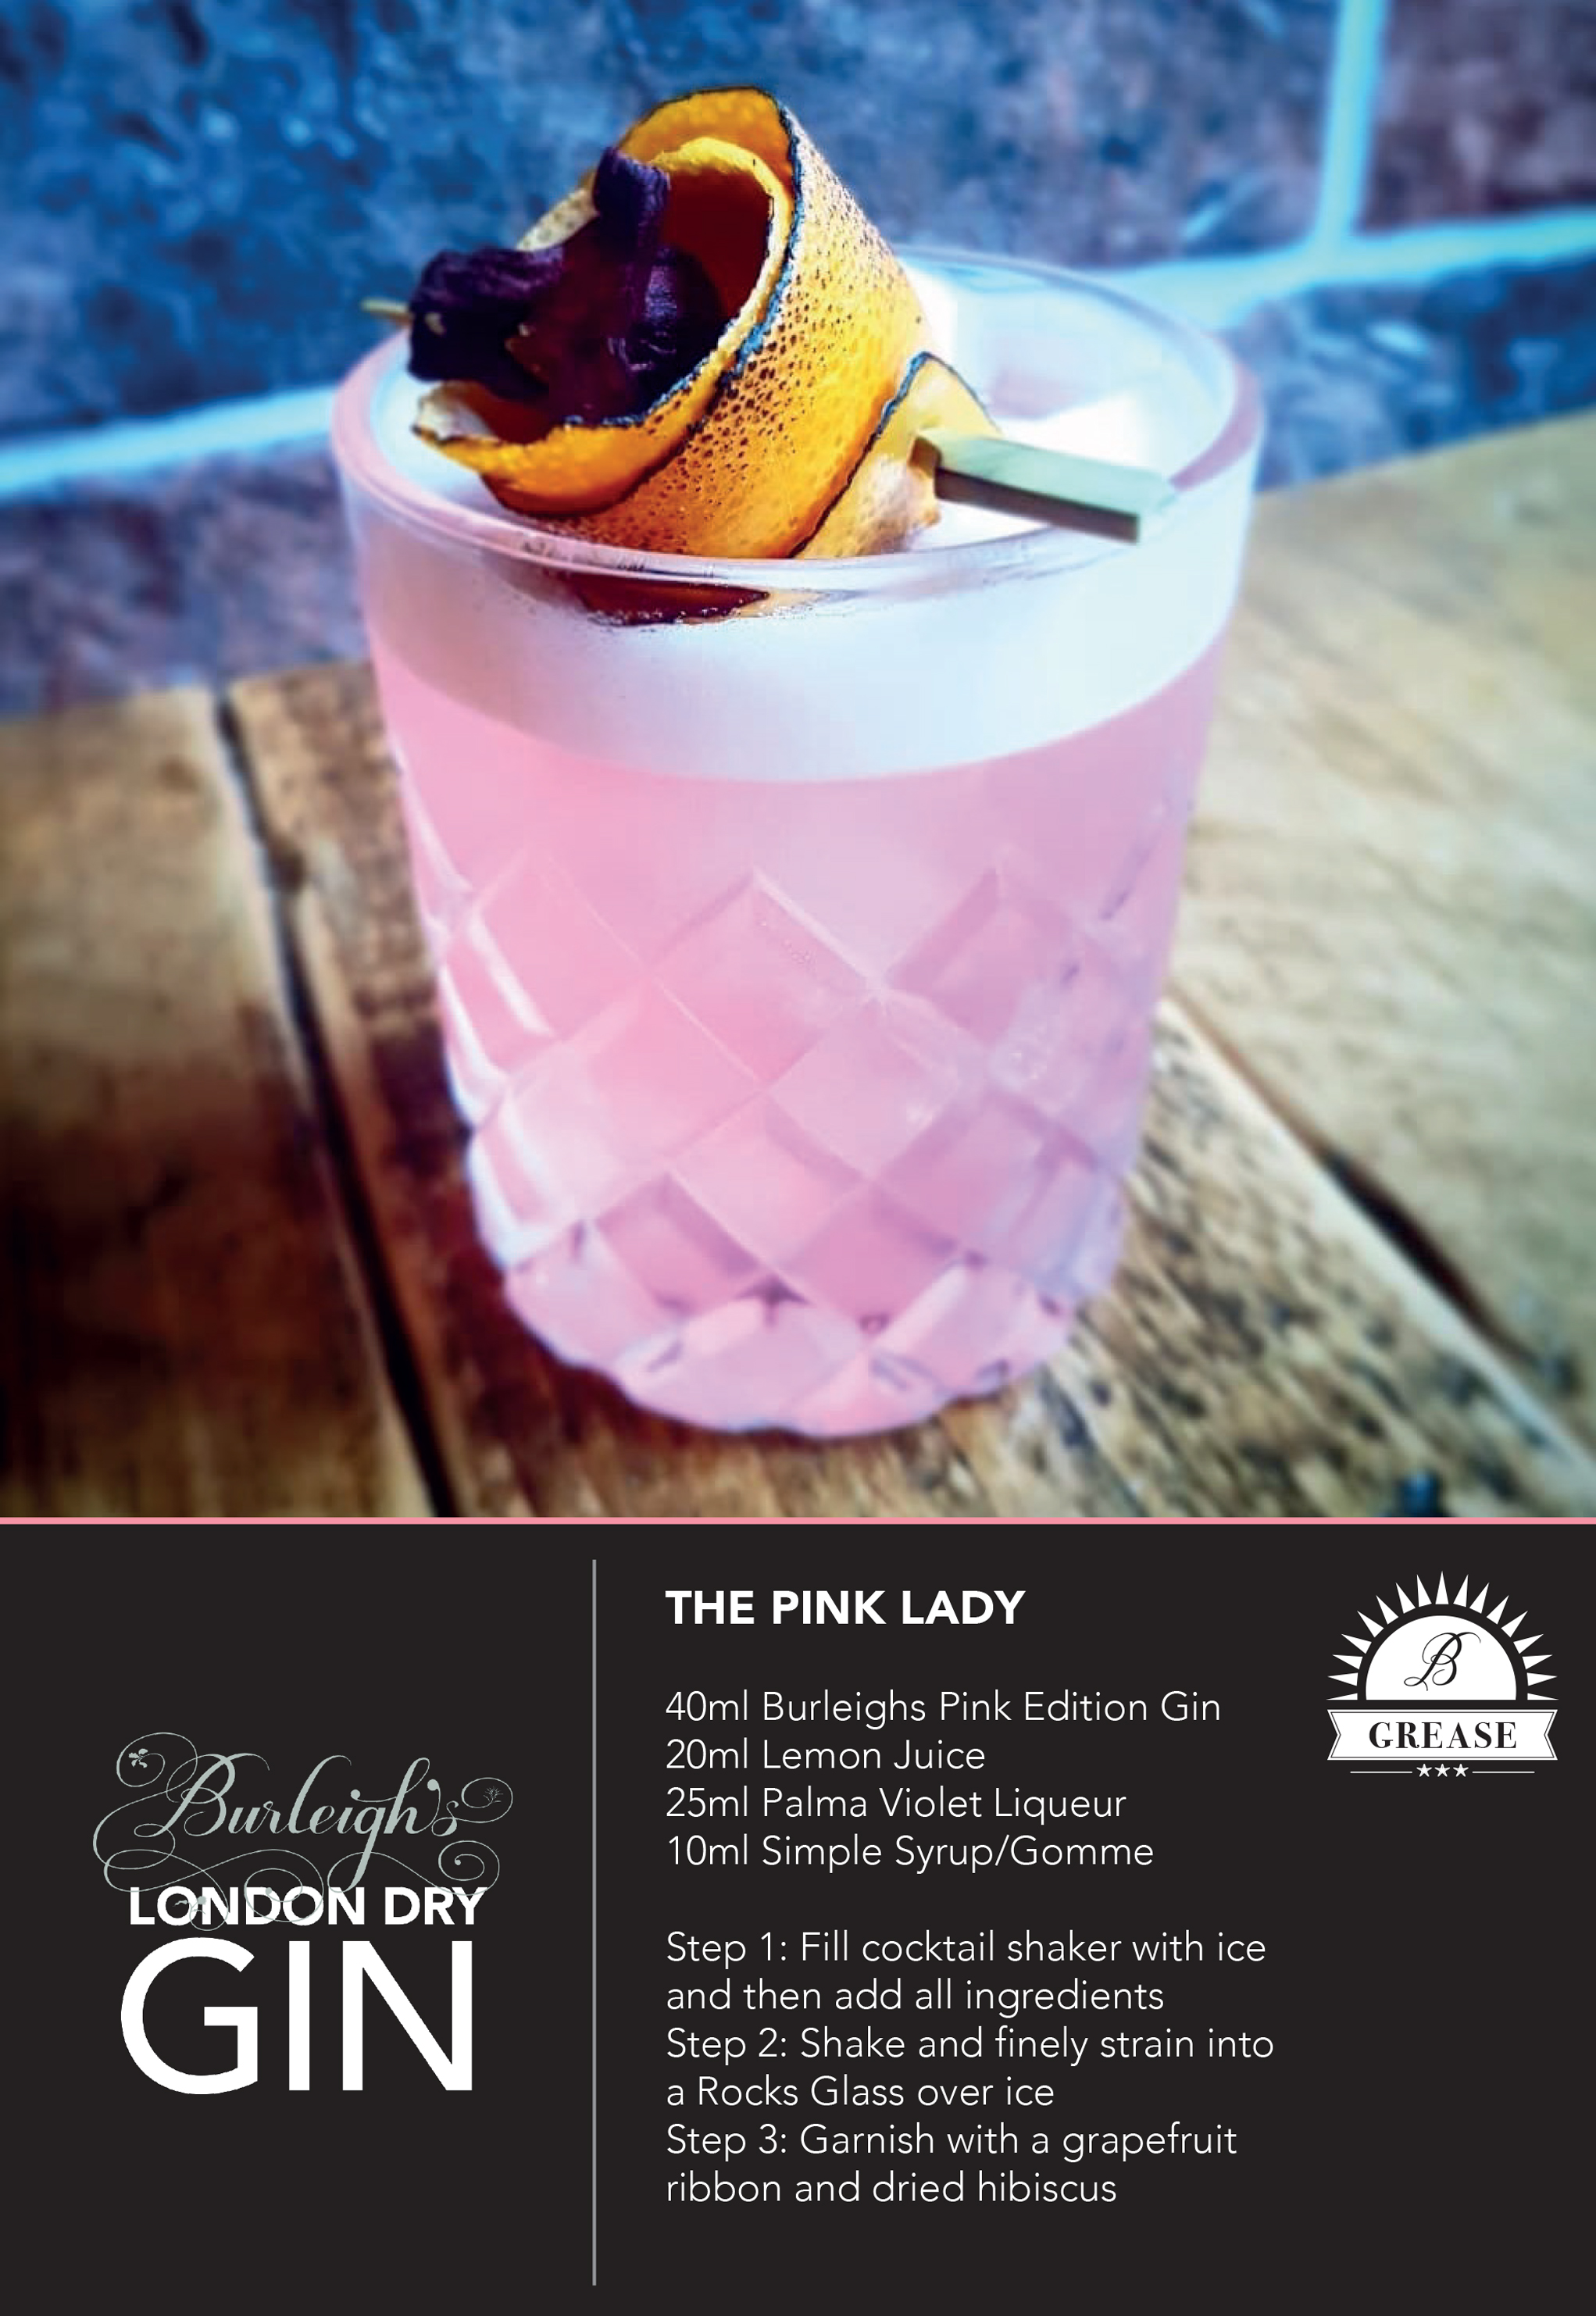 Picture and recipe of a Pink Lady cocktail created by Burleigh Gin